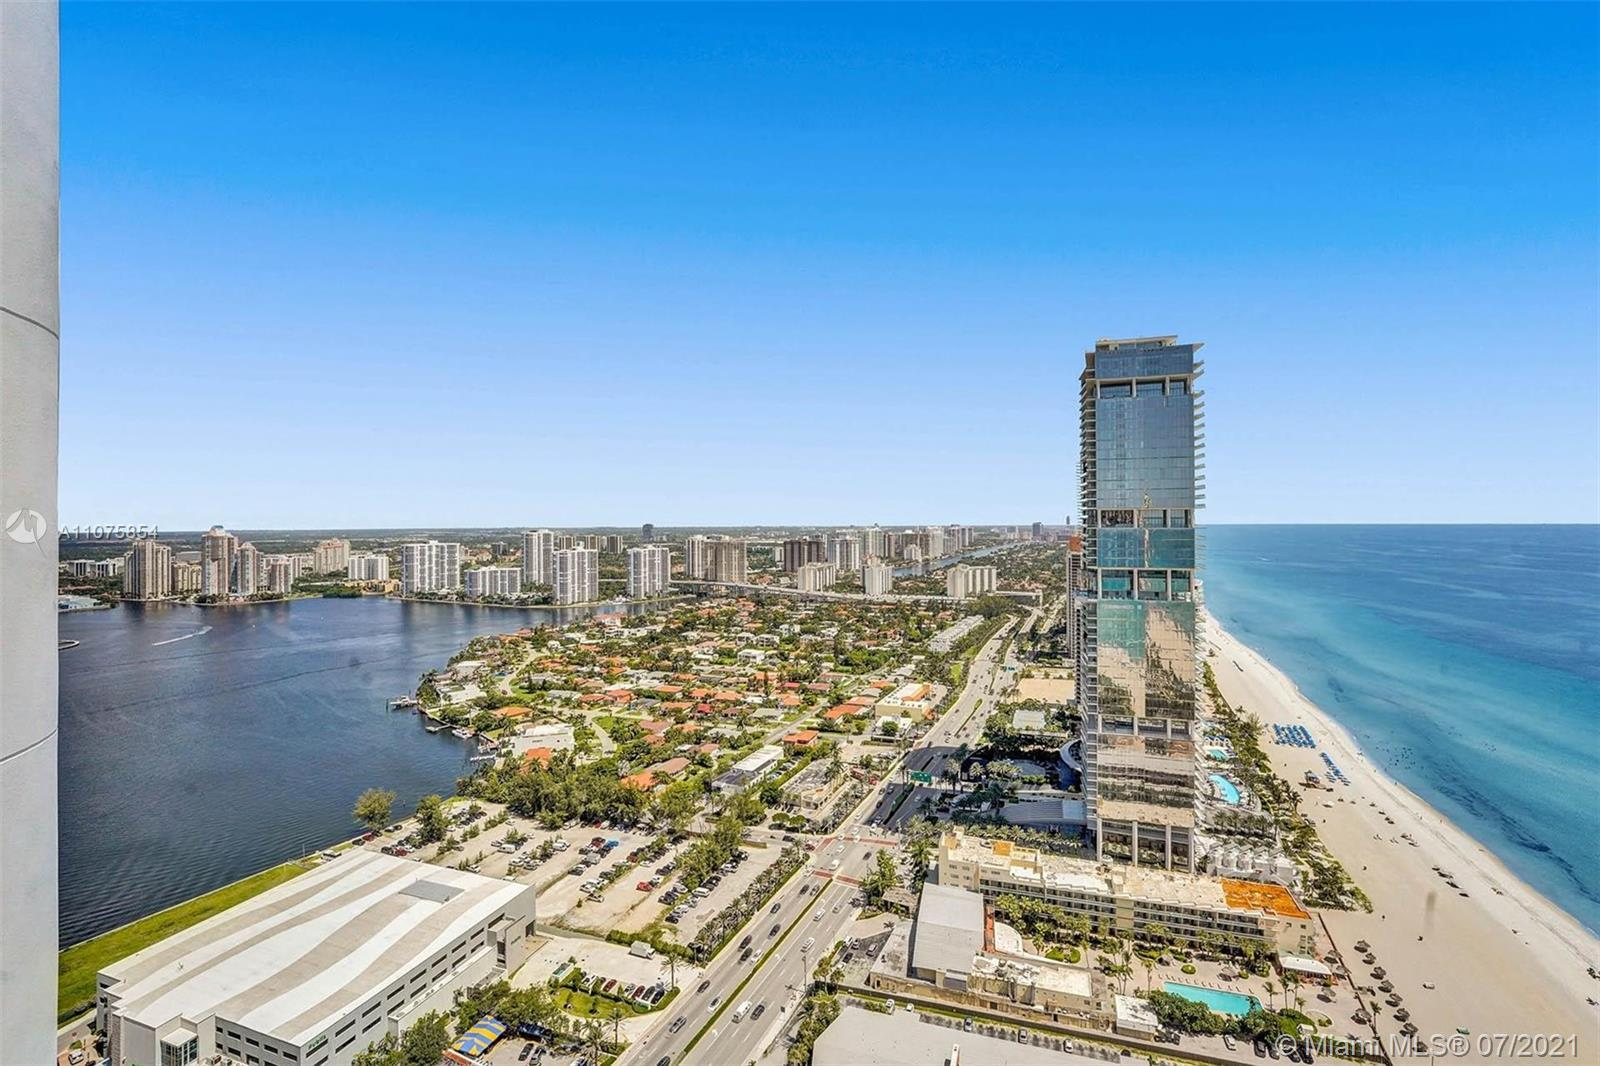 LUXURIOUS  2 BDR 2.5 BATH PENTHOUSE IN TRUMP ROYALE. EXPANSIVE & UNOBSTRUCTED DIRECT OCEAN, INTRACOA